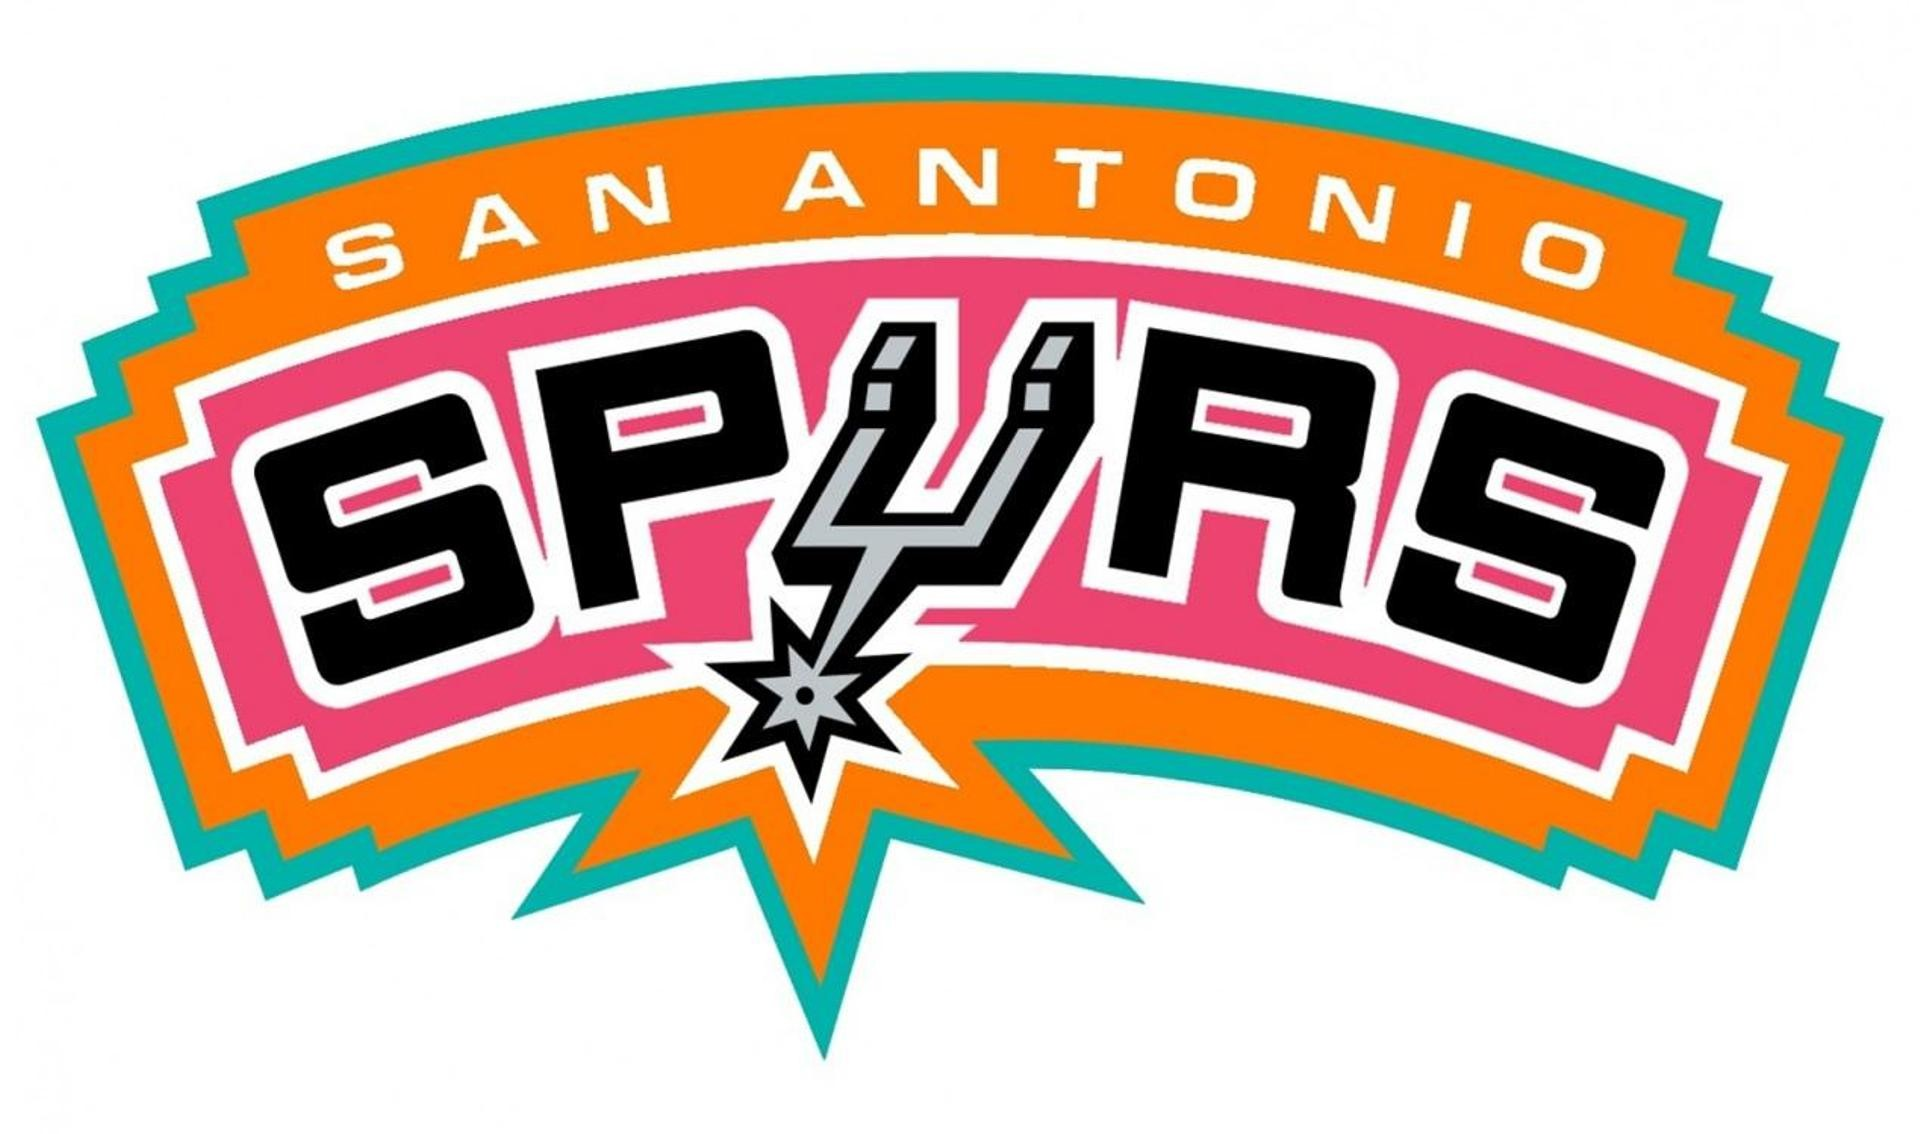 1920x1134 San antonio spurs wallpaper hd San Antonio Spurs Wallpaper HD.